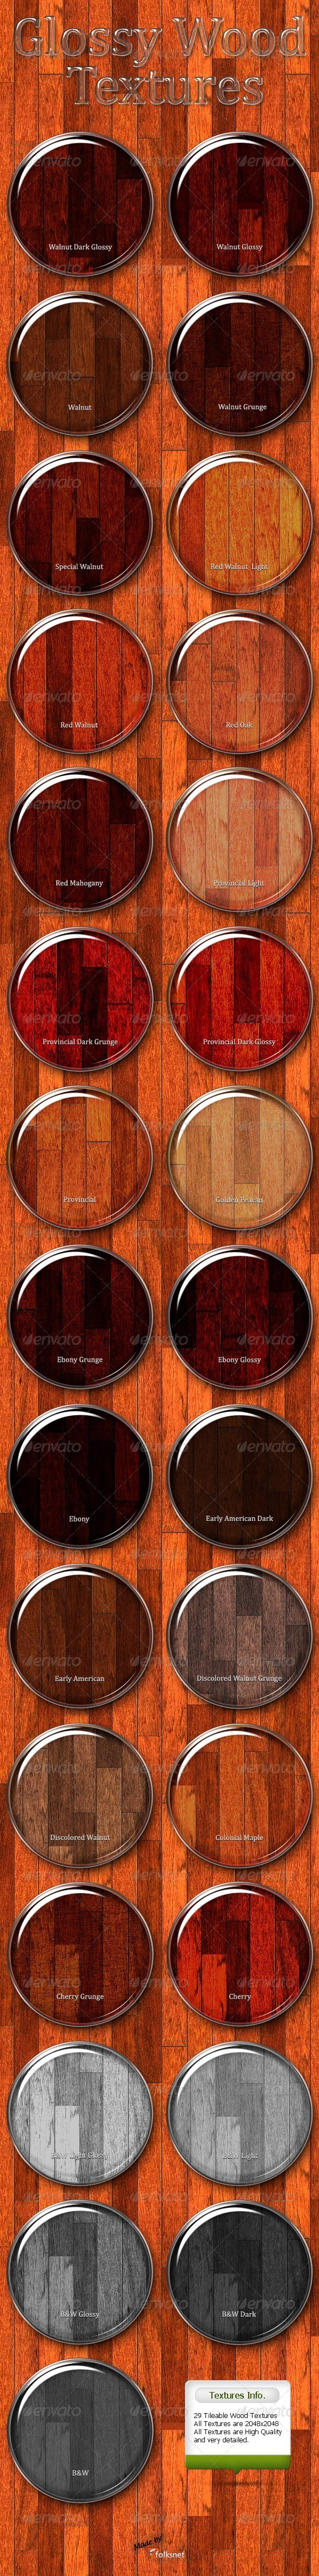 Glossy Wood Textures - 3DOcean Item for Sale